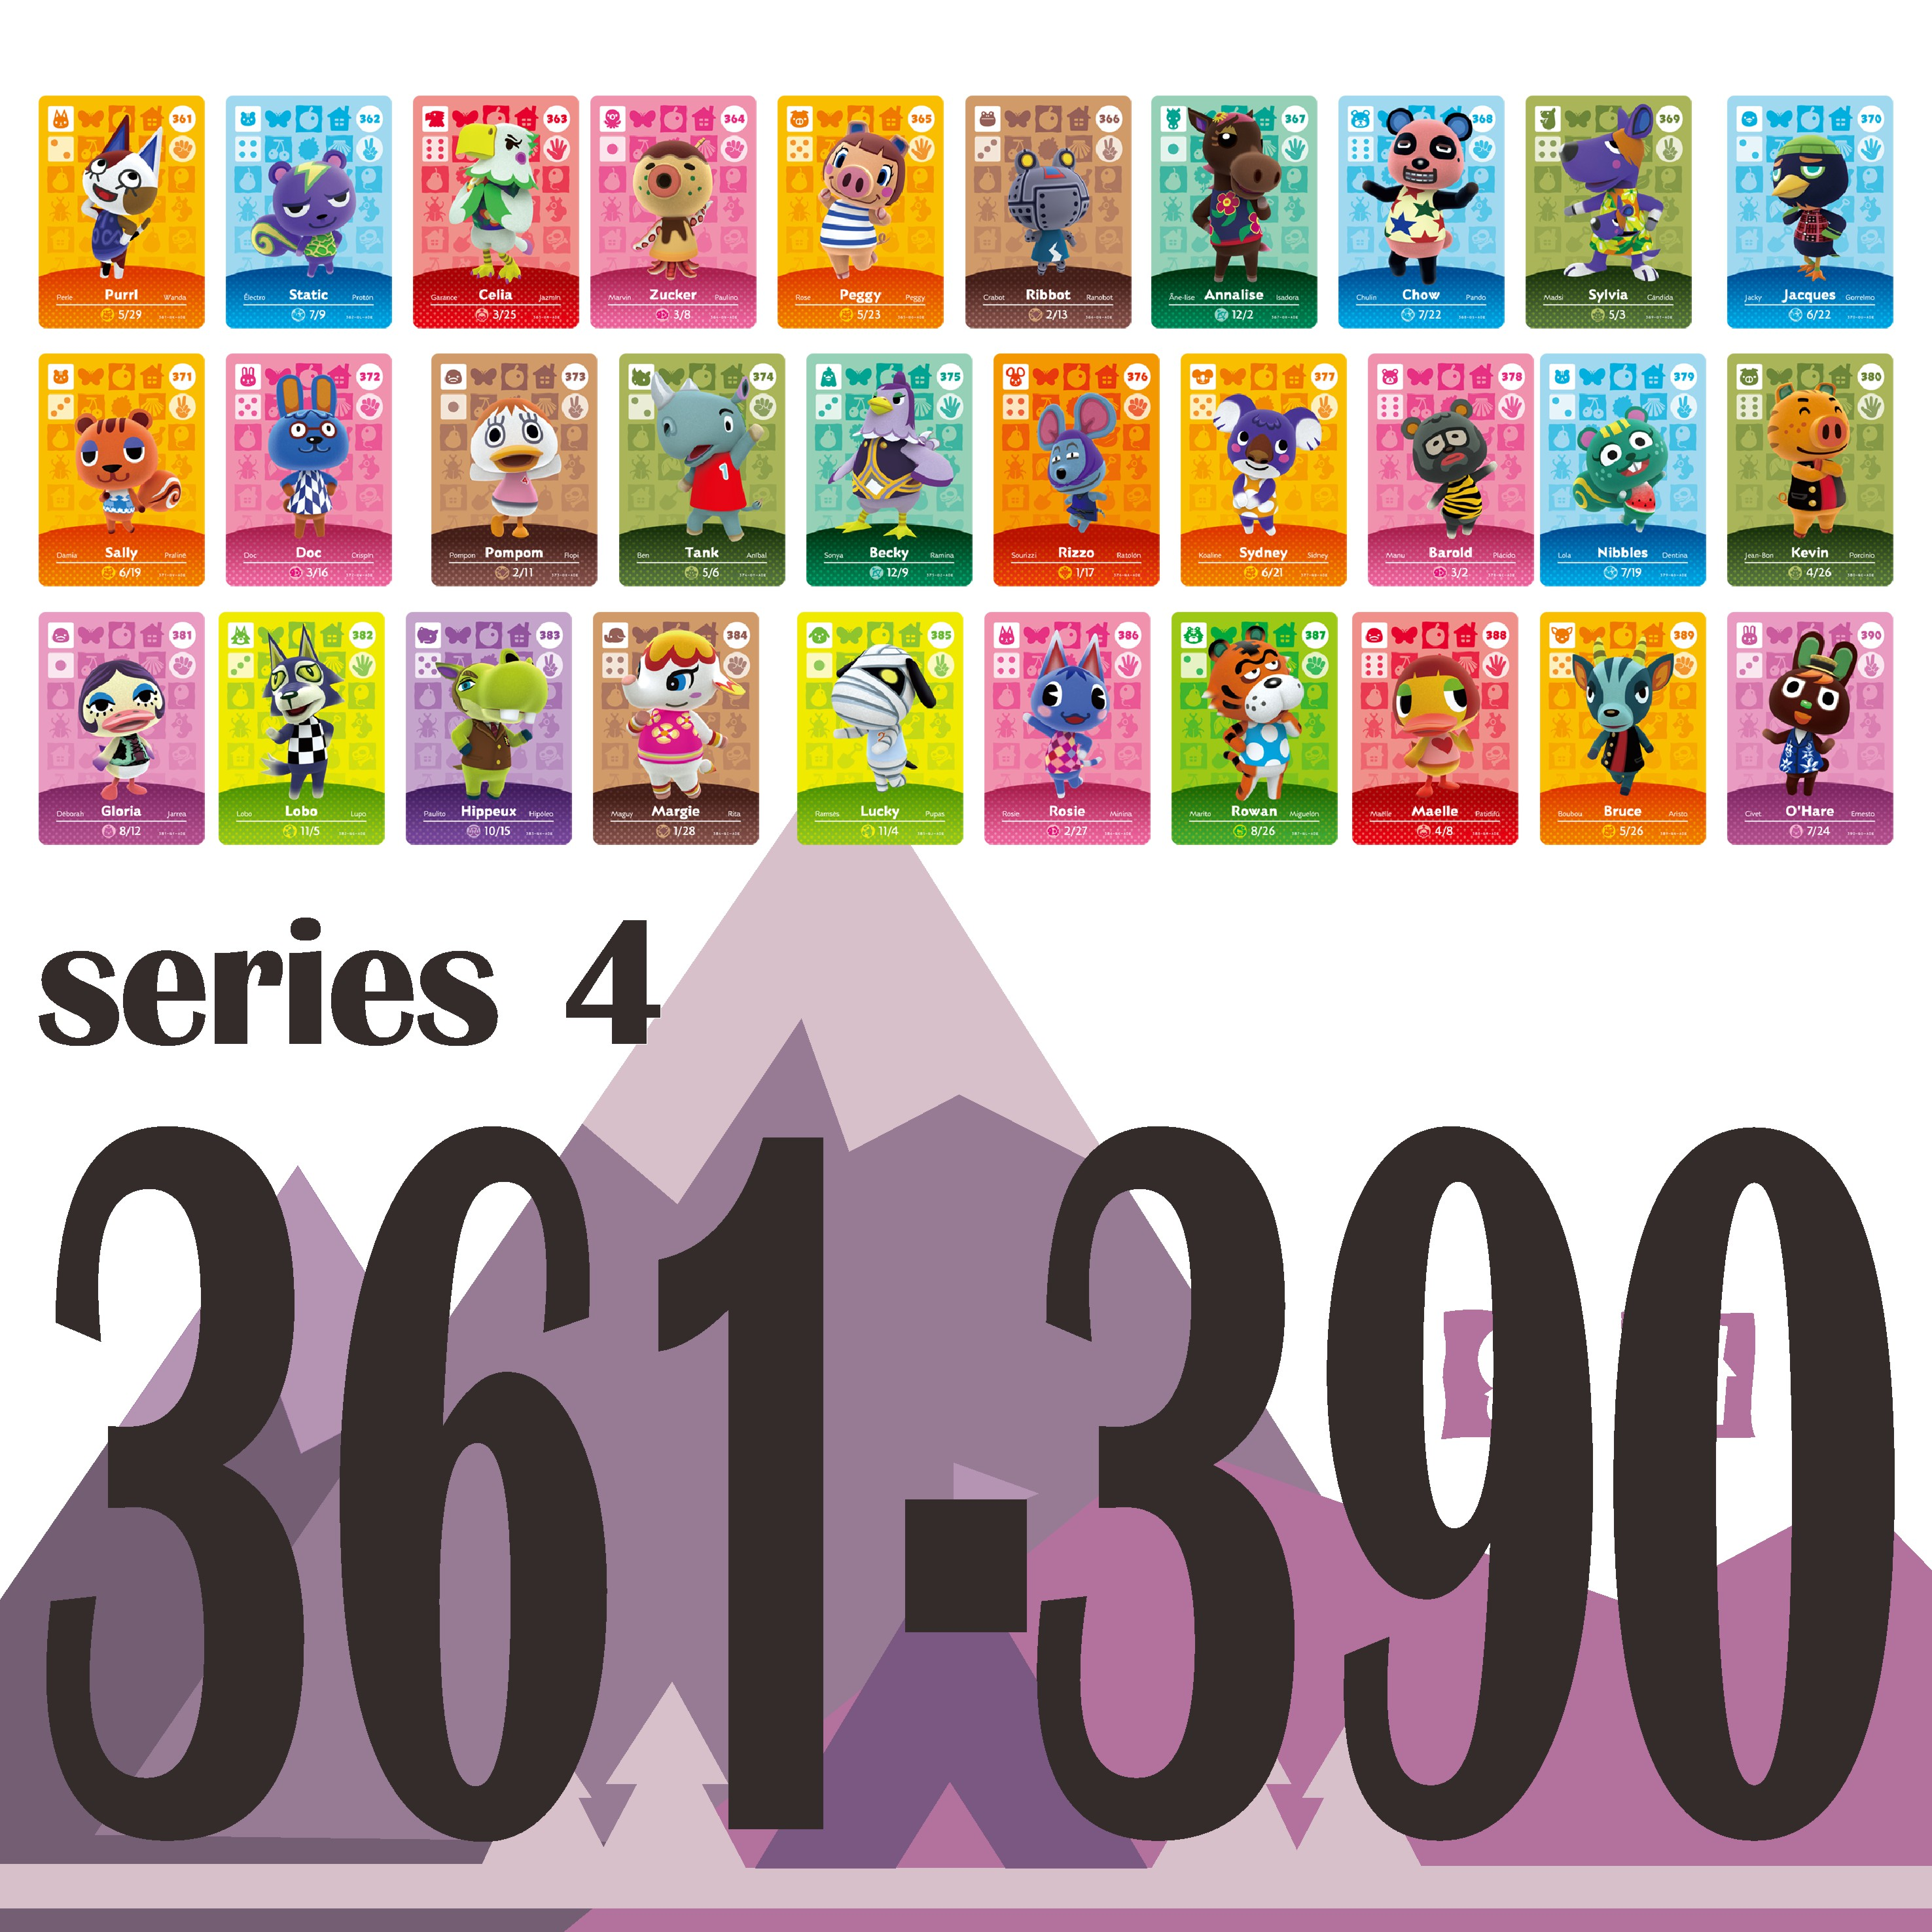 Animal Crossing Card Amiibo Card Work For NS Games Switch Rosie Welcome Stickers Amibo Ankha NFC Series 4 (361 To 390)